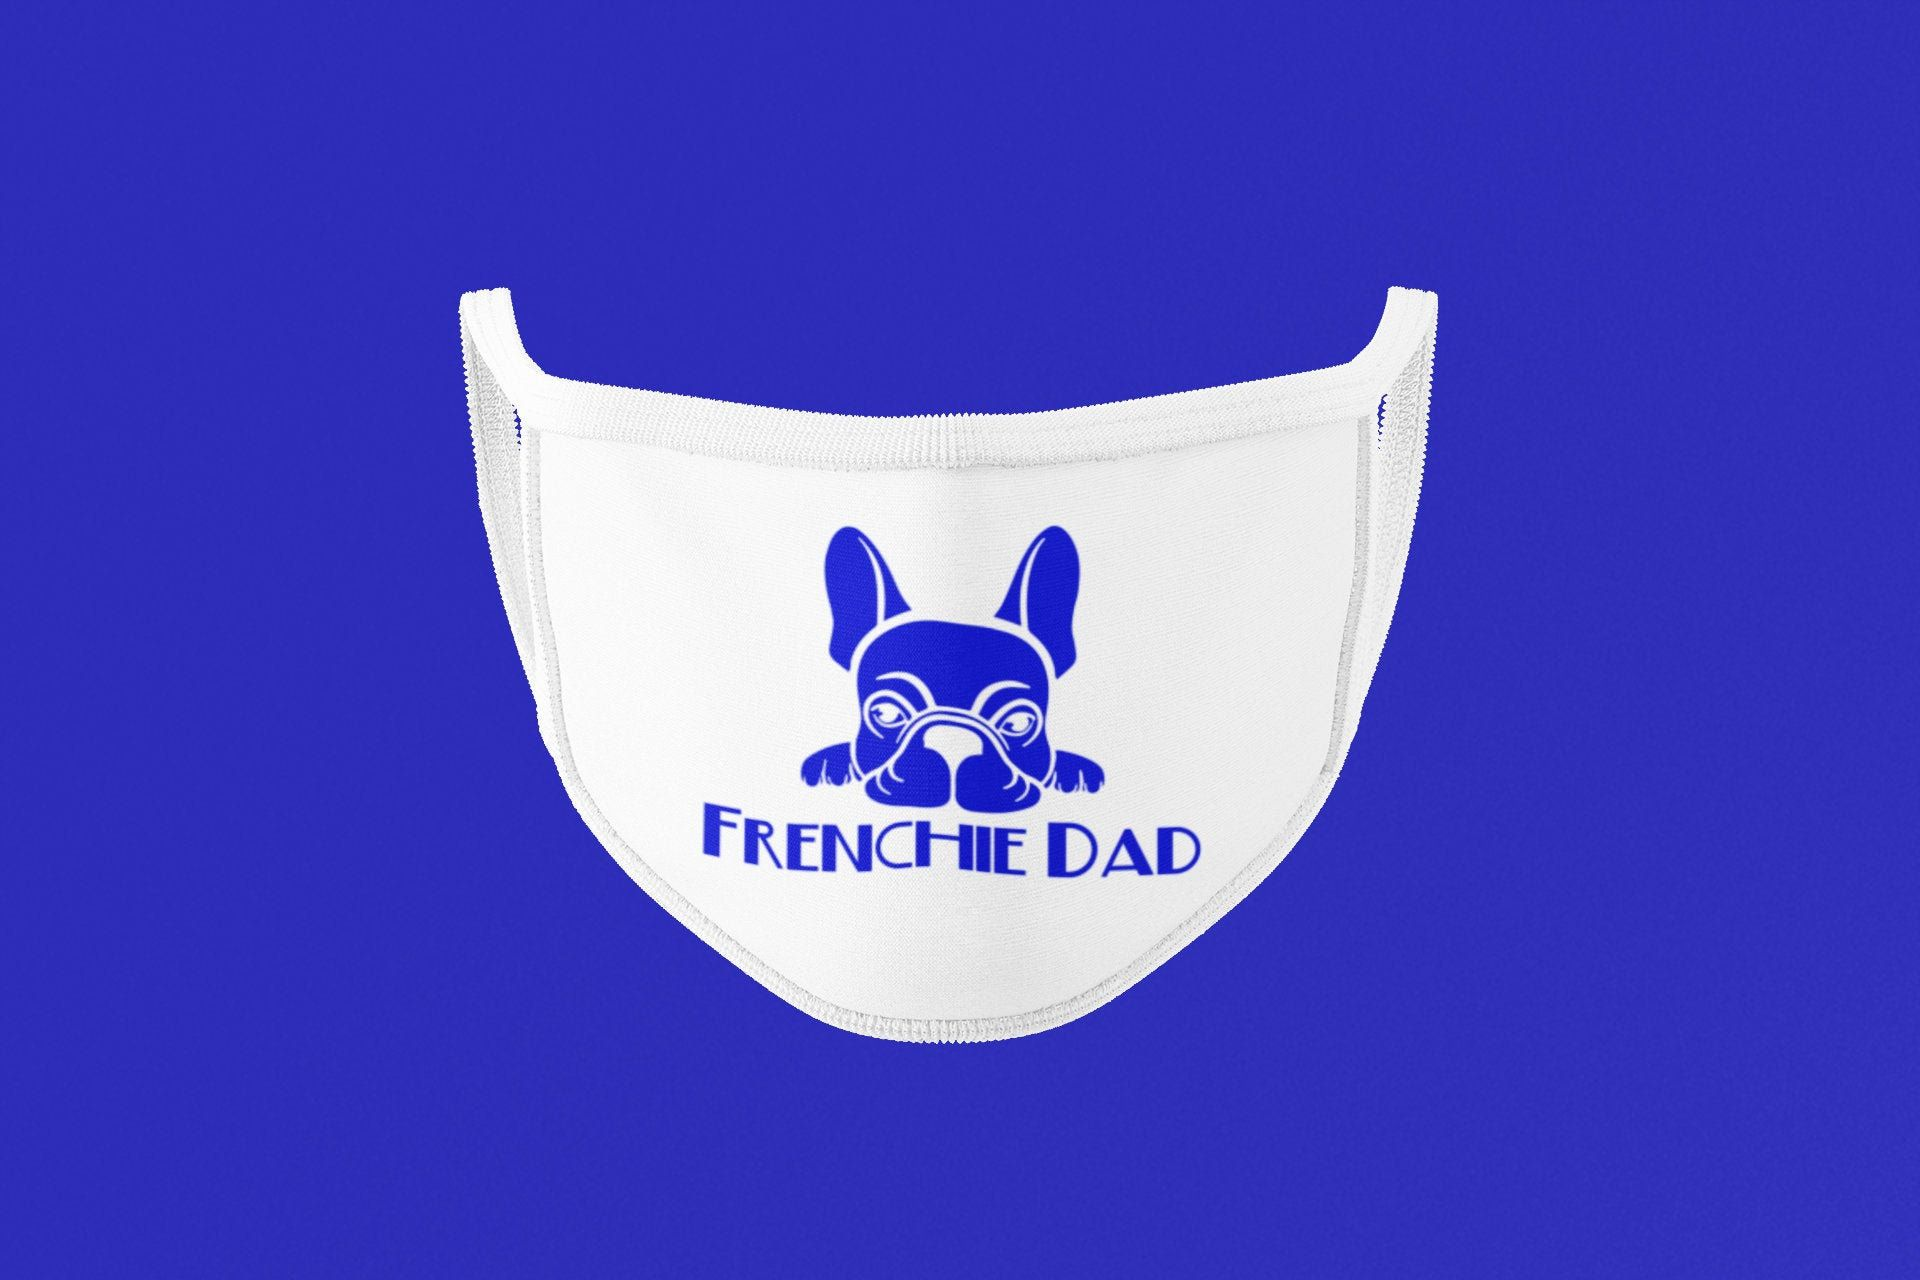 Frenchie Dad Face Mask French Bulldog Face Mask Frenchie Etsy In 2020 Face Mask Frenchie Mom Dads